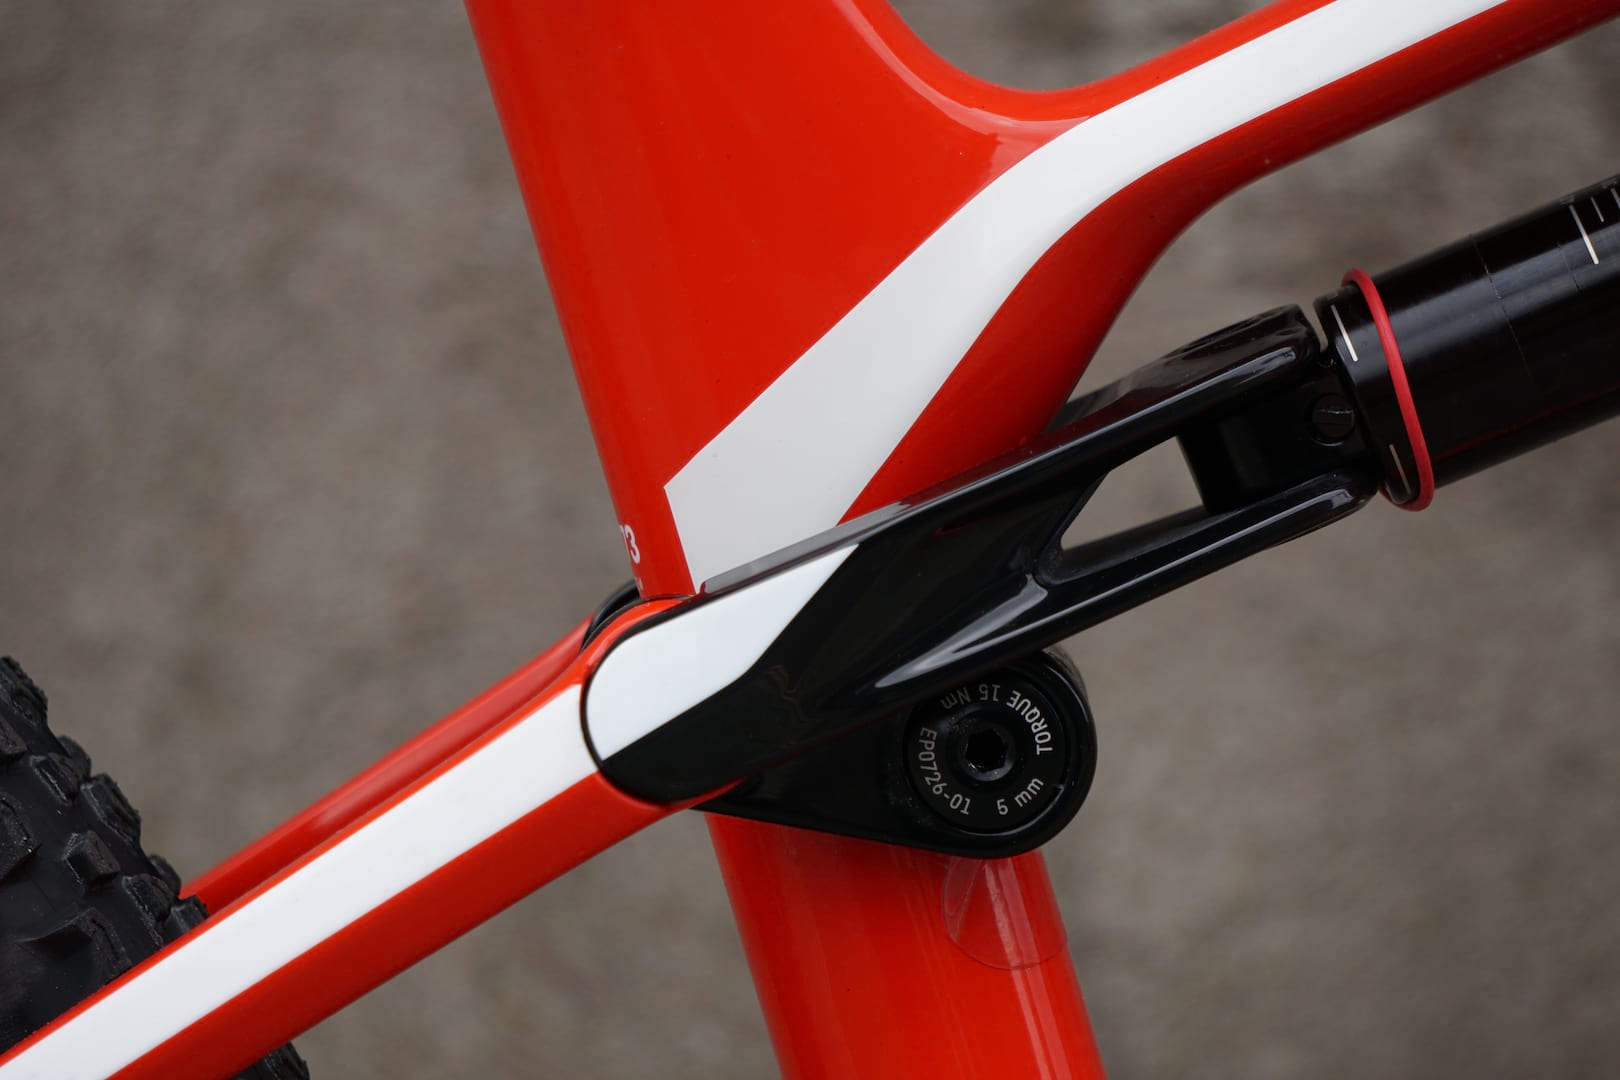 First Look  Canyon Lux CF SL 8.0 Pro Race. The Bike Starsky And ... c0a43392fd0